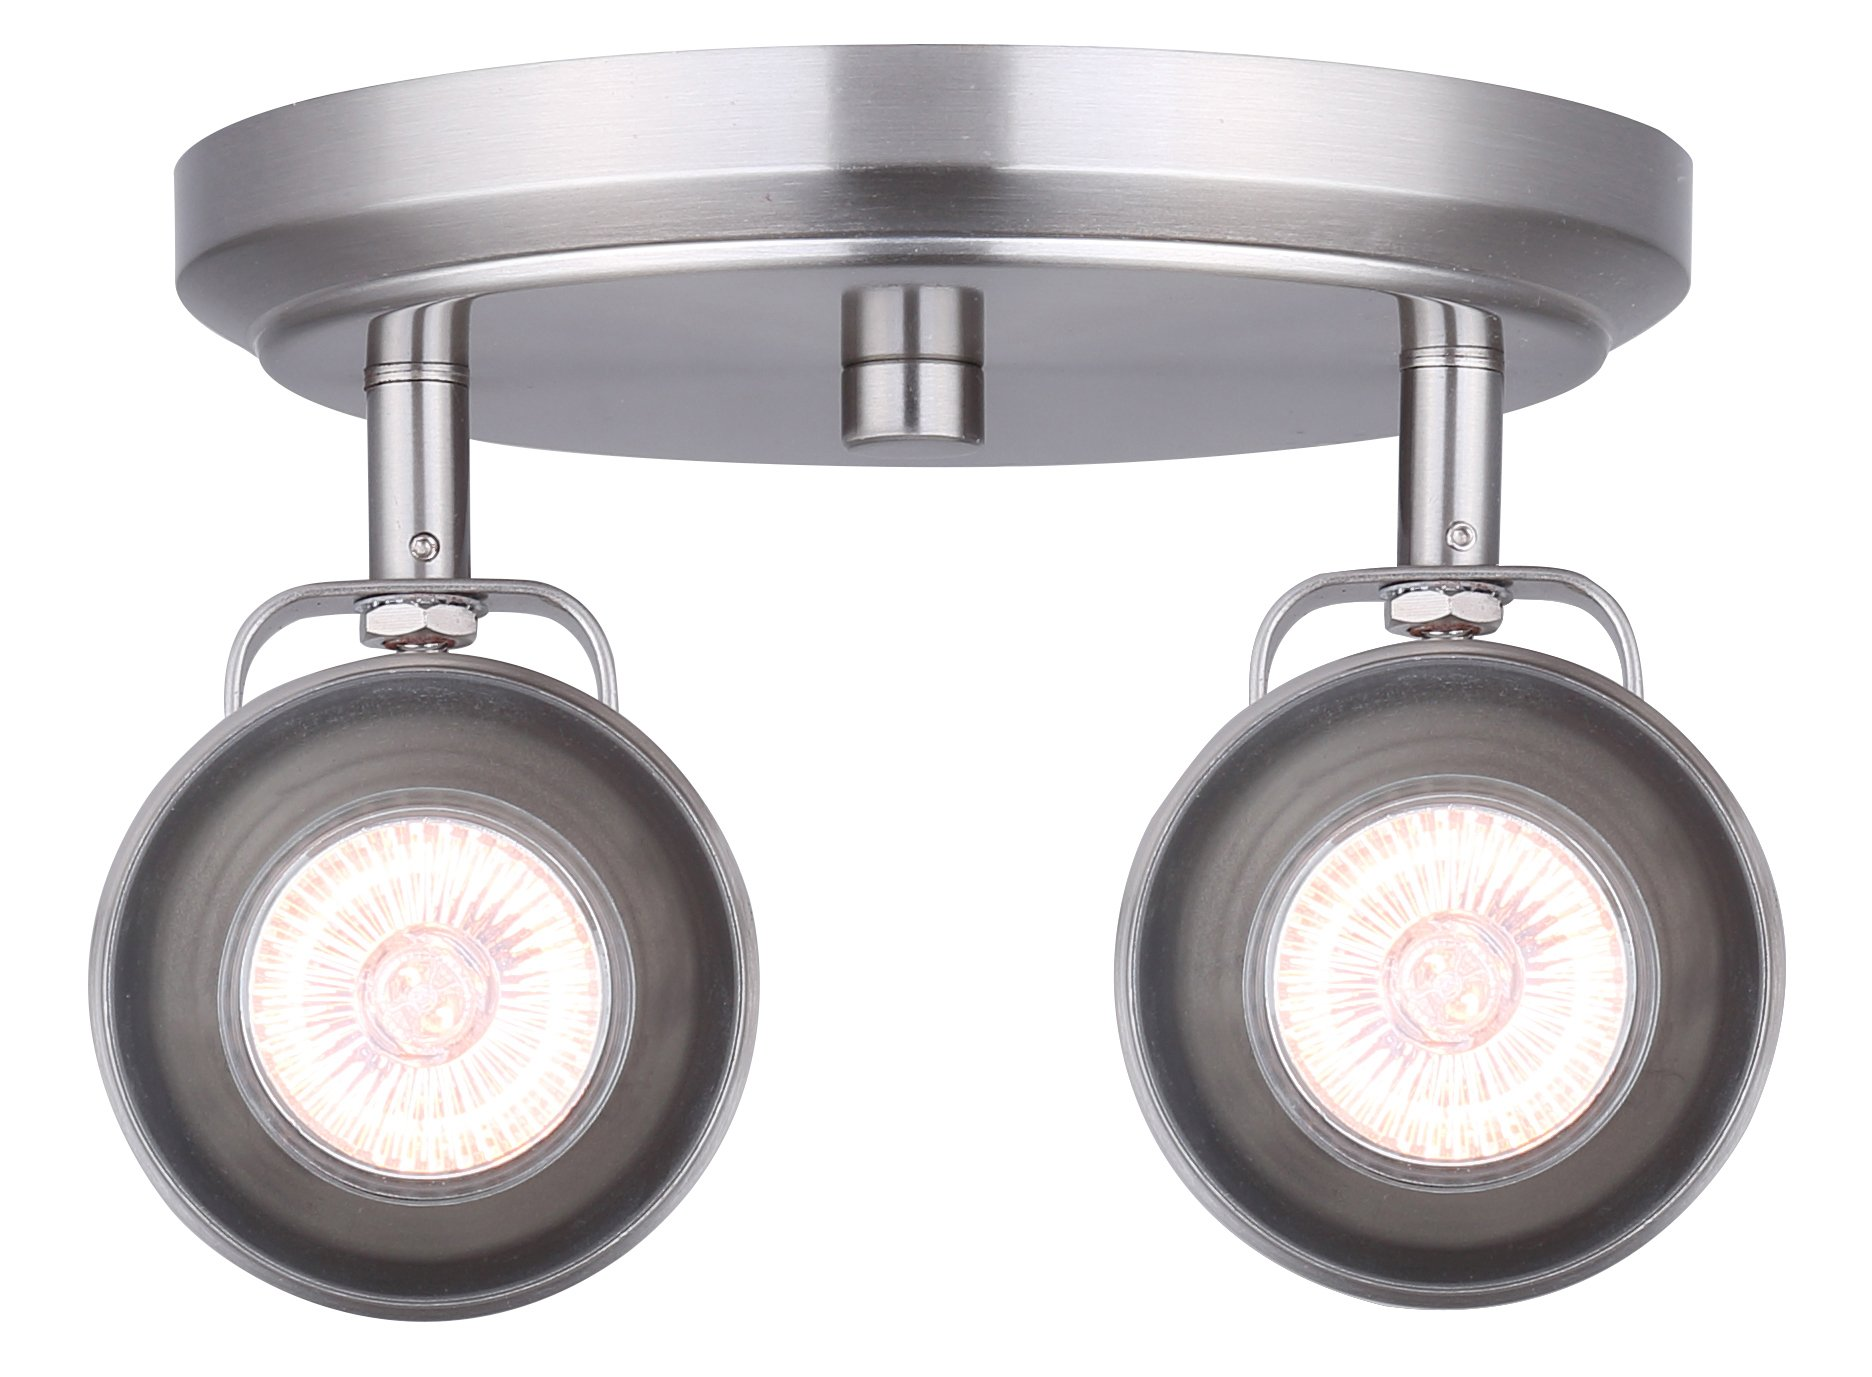 CANARM ICW622A02BN10 Ltd Polo 2 Light Ceiling/Wall Adjustable Heads, Brushed Nickel